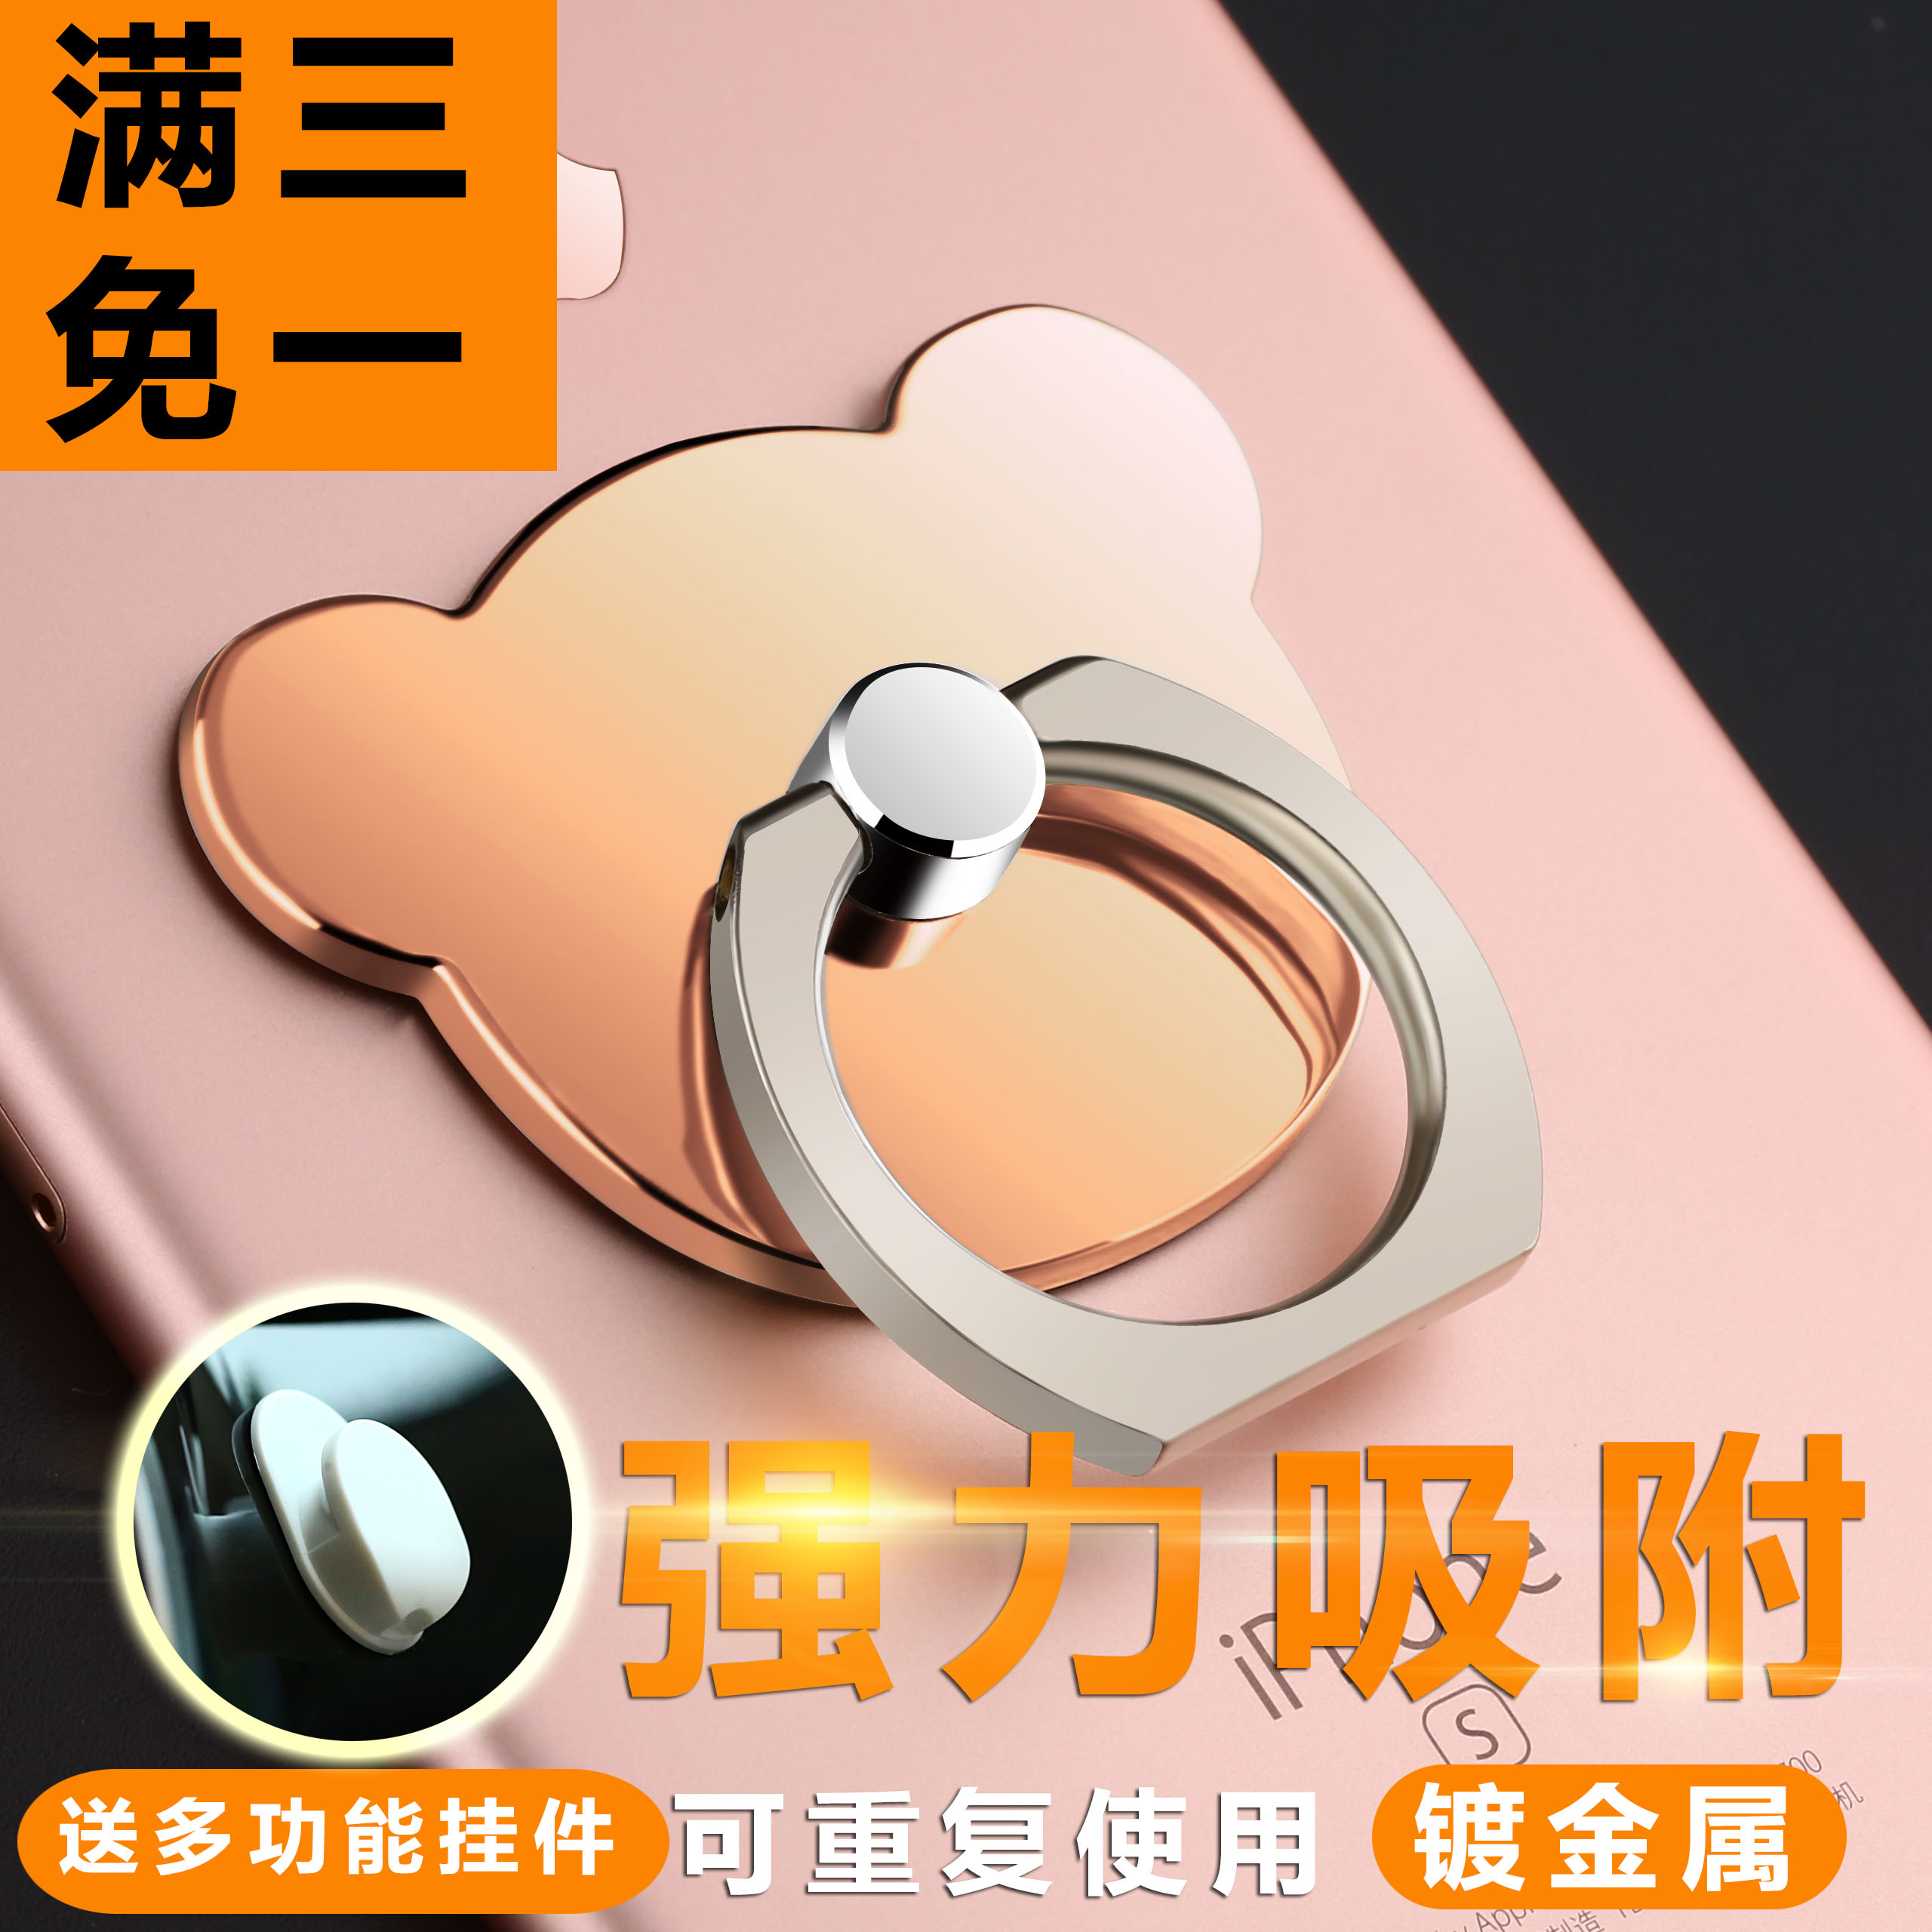 Mobile phone, buckle, sticky ring buckle, flat support, millet phone ring, lazy supporter protection